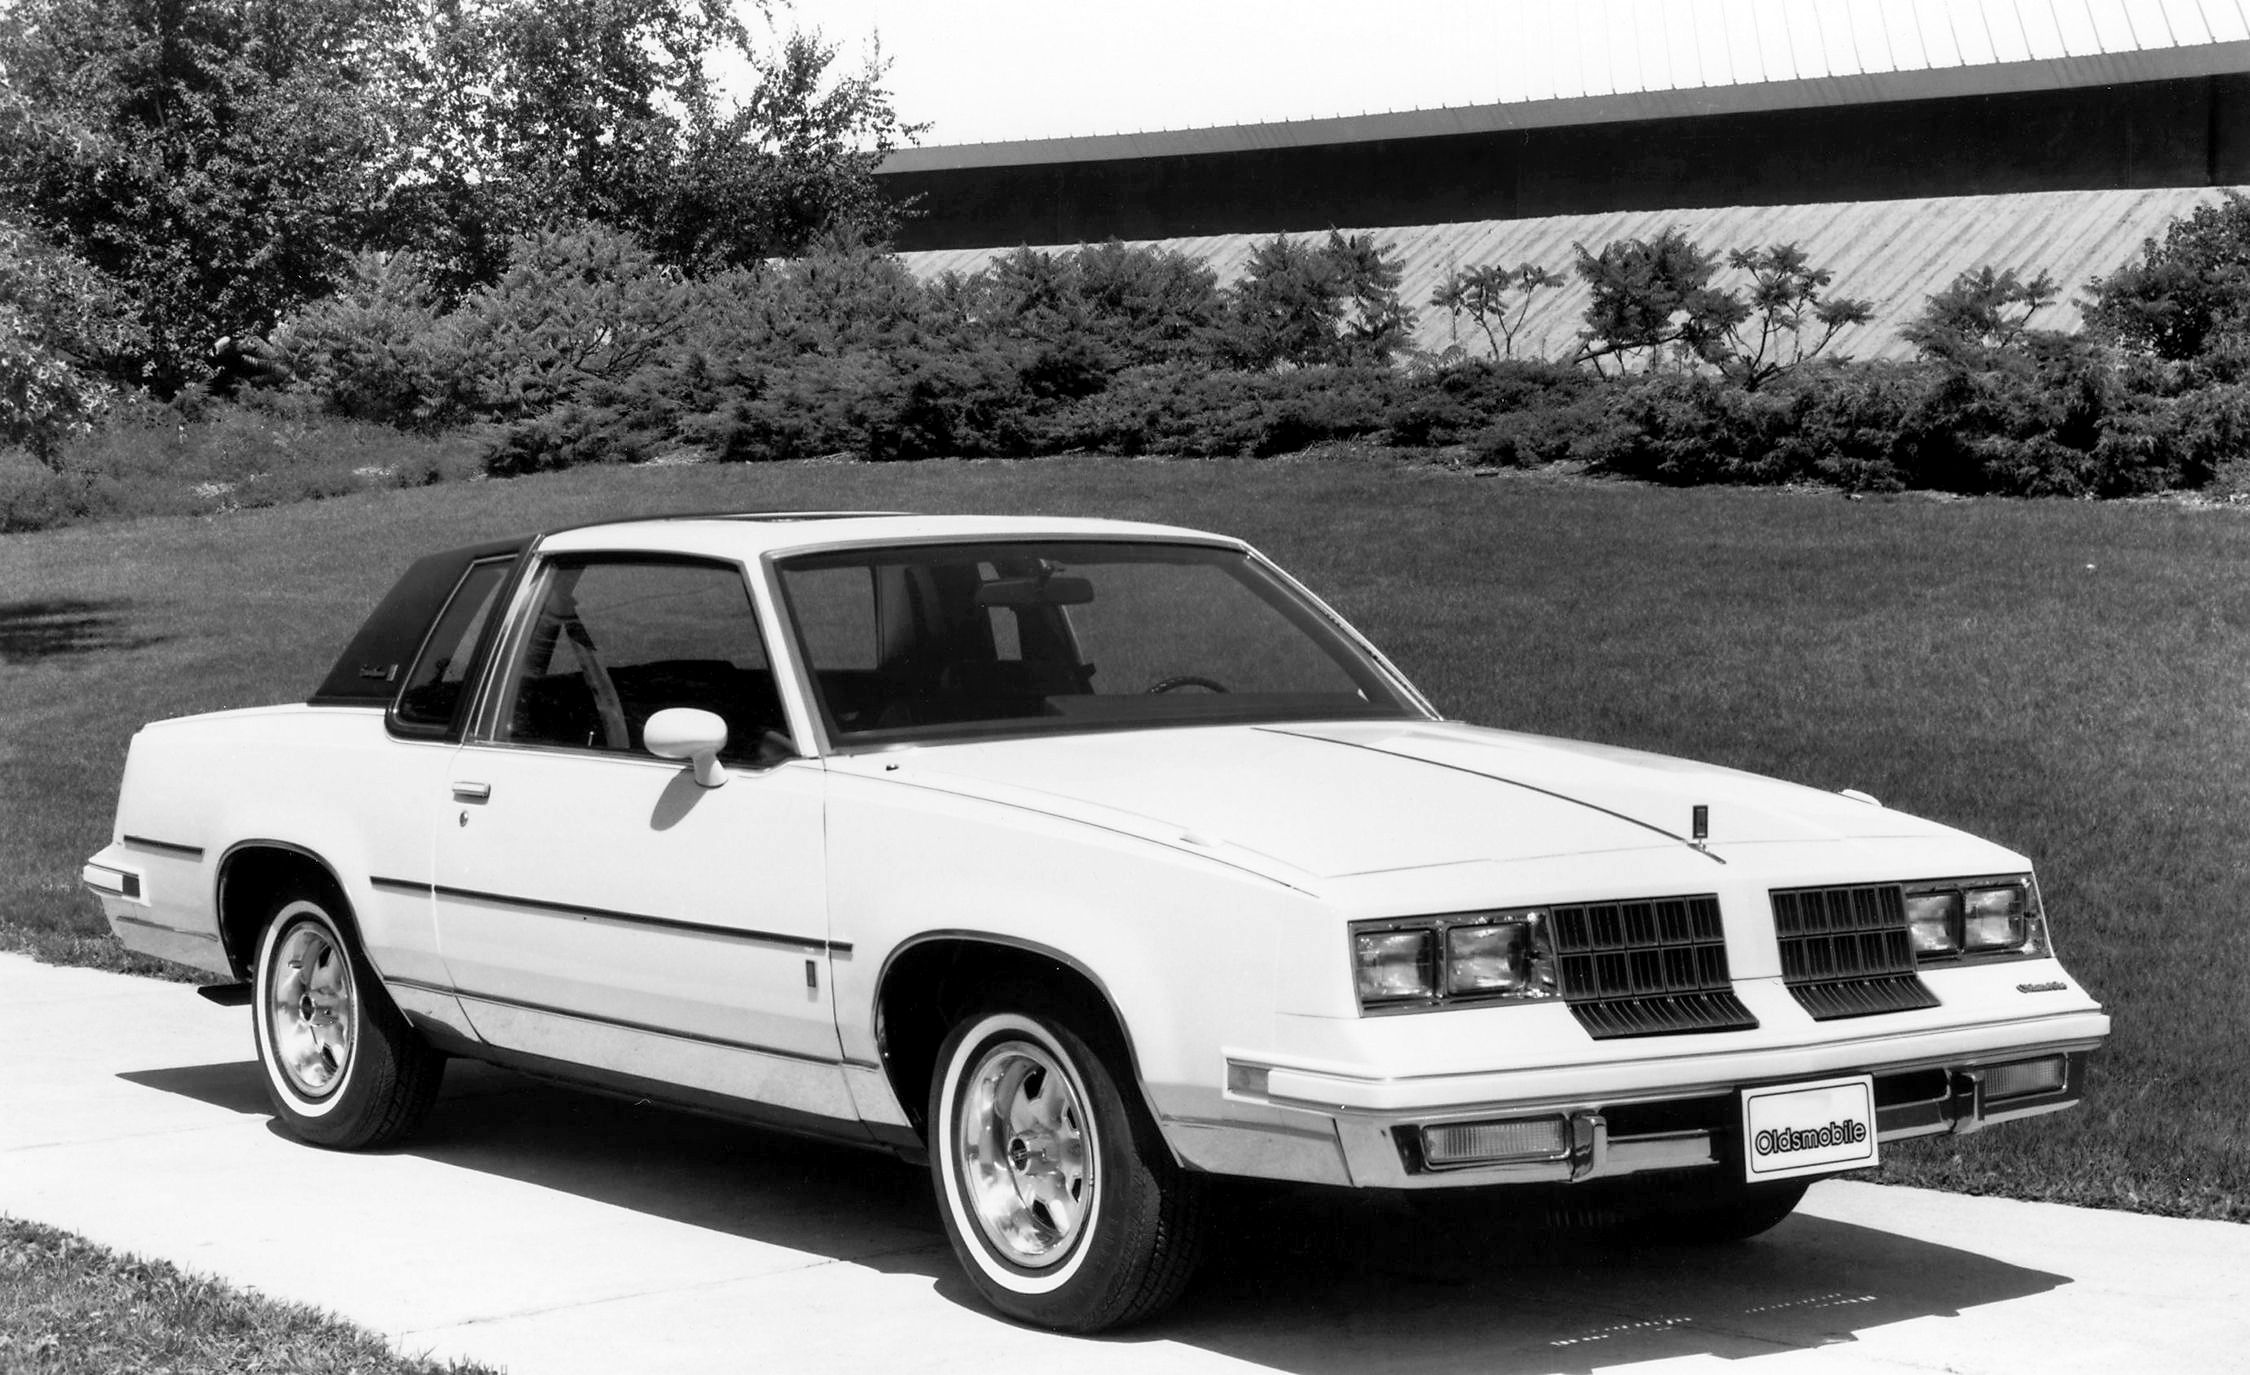 best selling car the year you graduated high school 1978 today best selling car the year you graduated